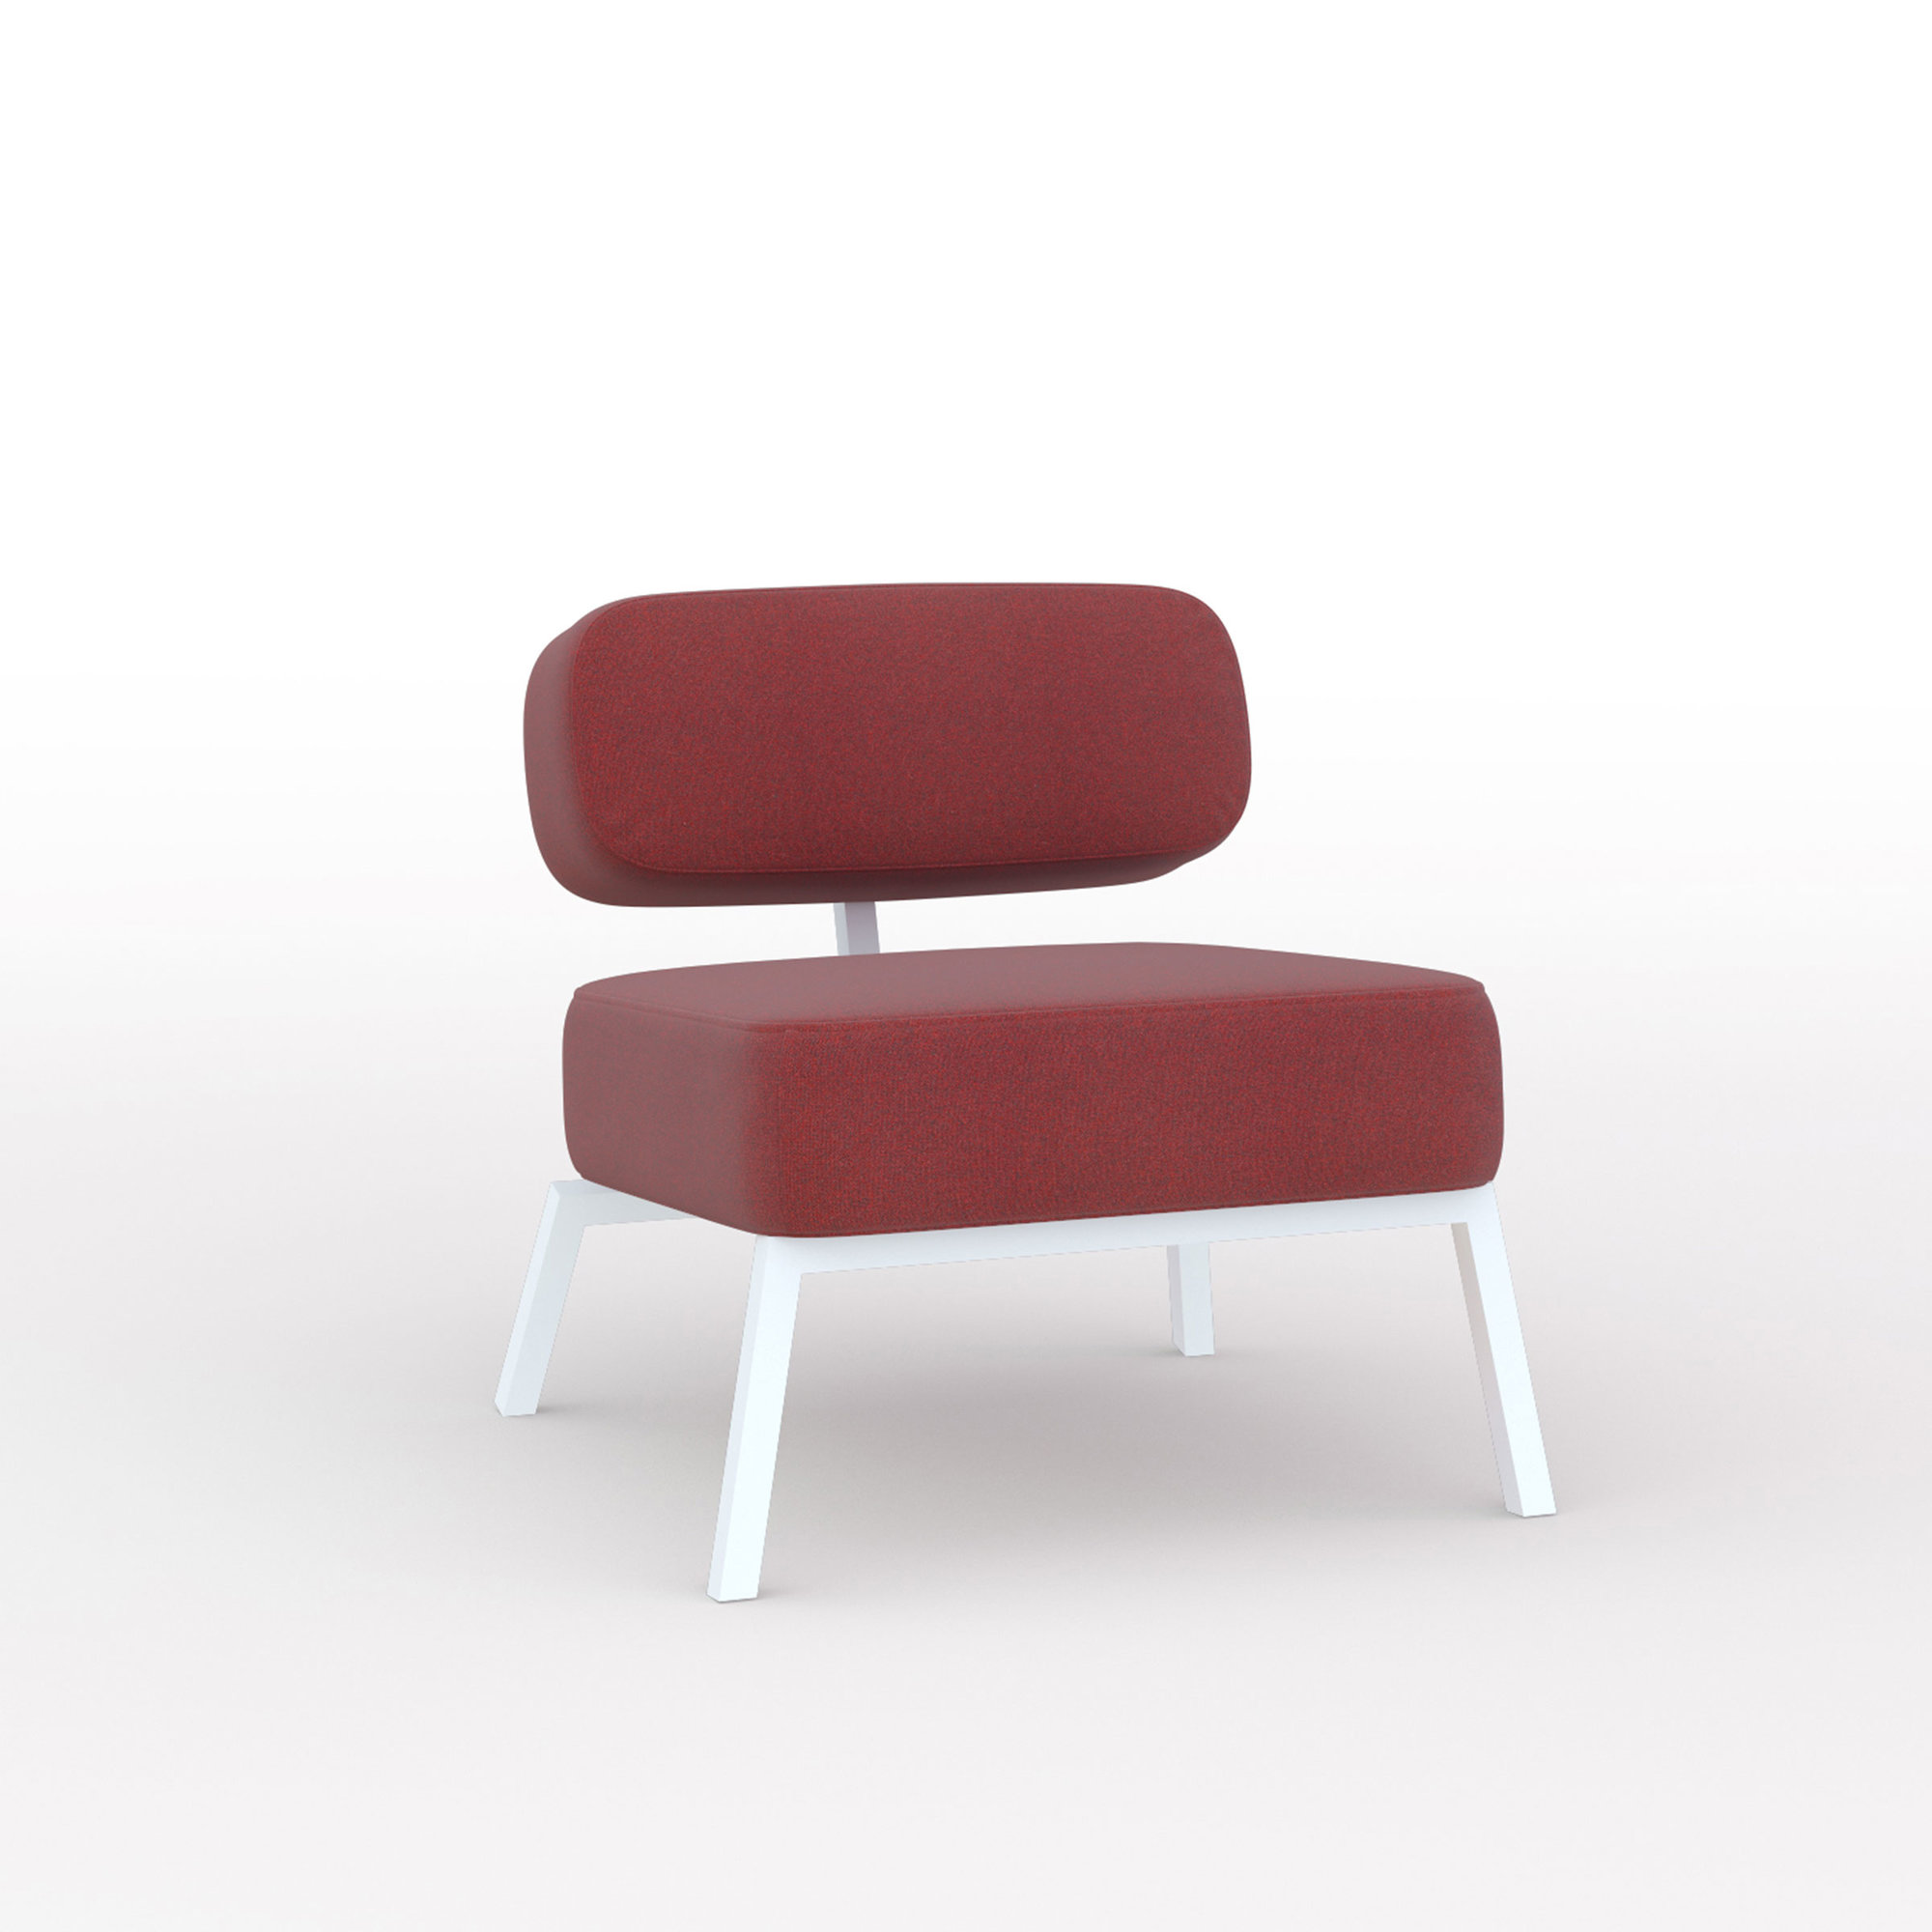 Design zitbank | Ode lounge chair 1 seater without armrest  tonica2 612 | Studio HENK | Listing_image